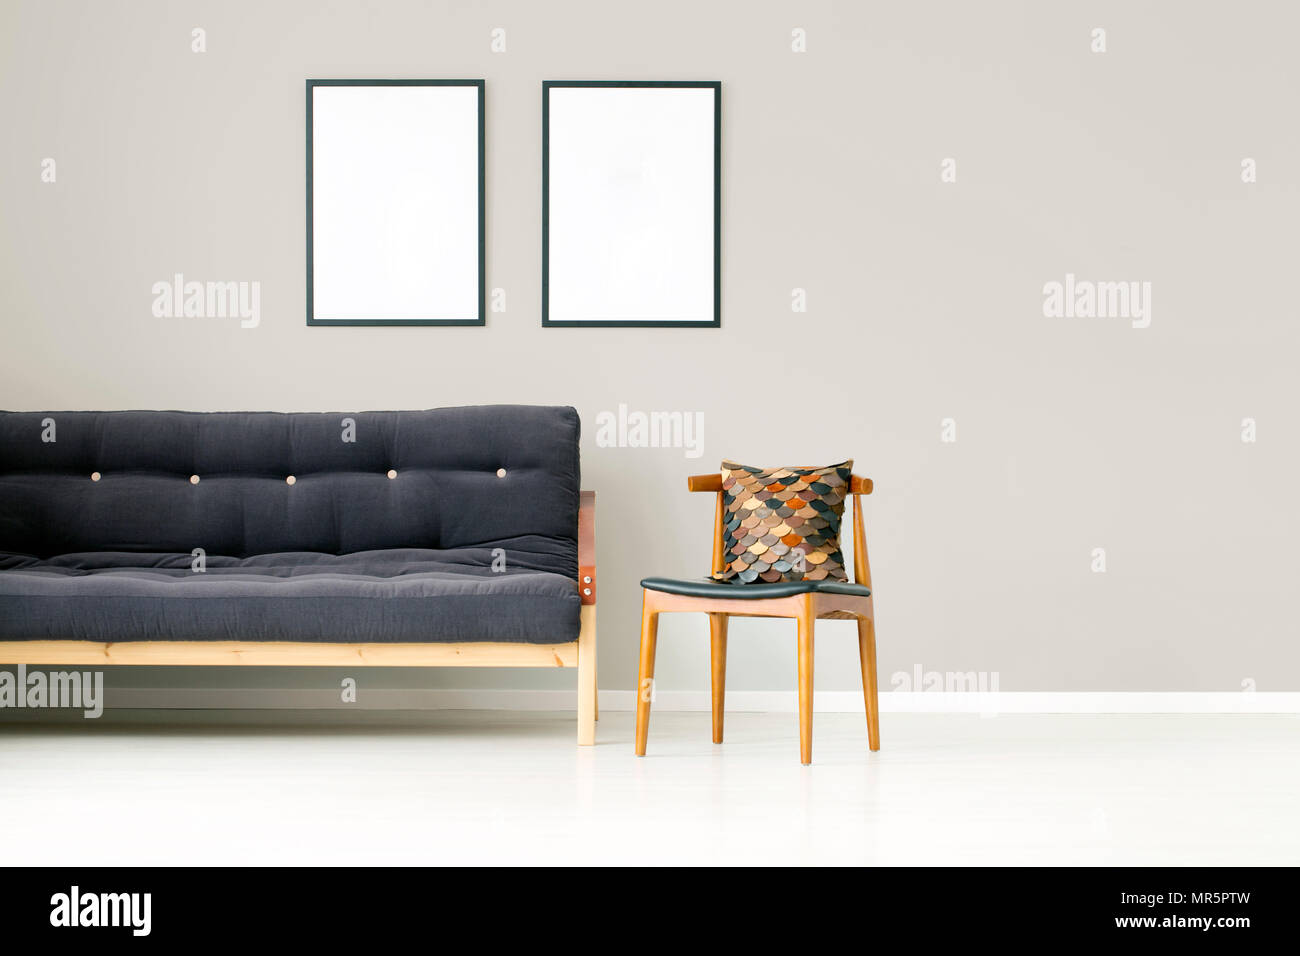 Pleasant Brown Pillow On Wooden Chair Next To Black Couch Against Andrewgaddart Wooden Chair Designs For Living Room Andrewgaddartcom